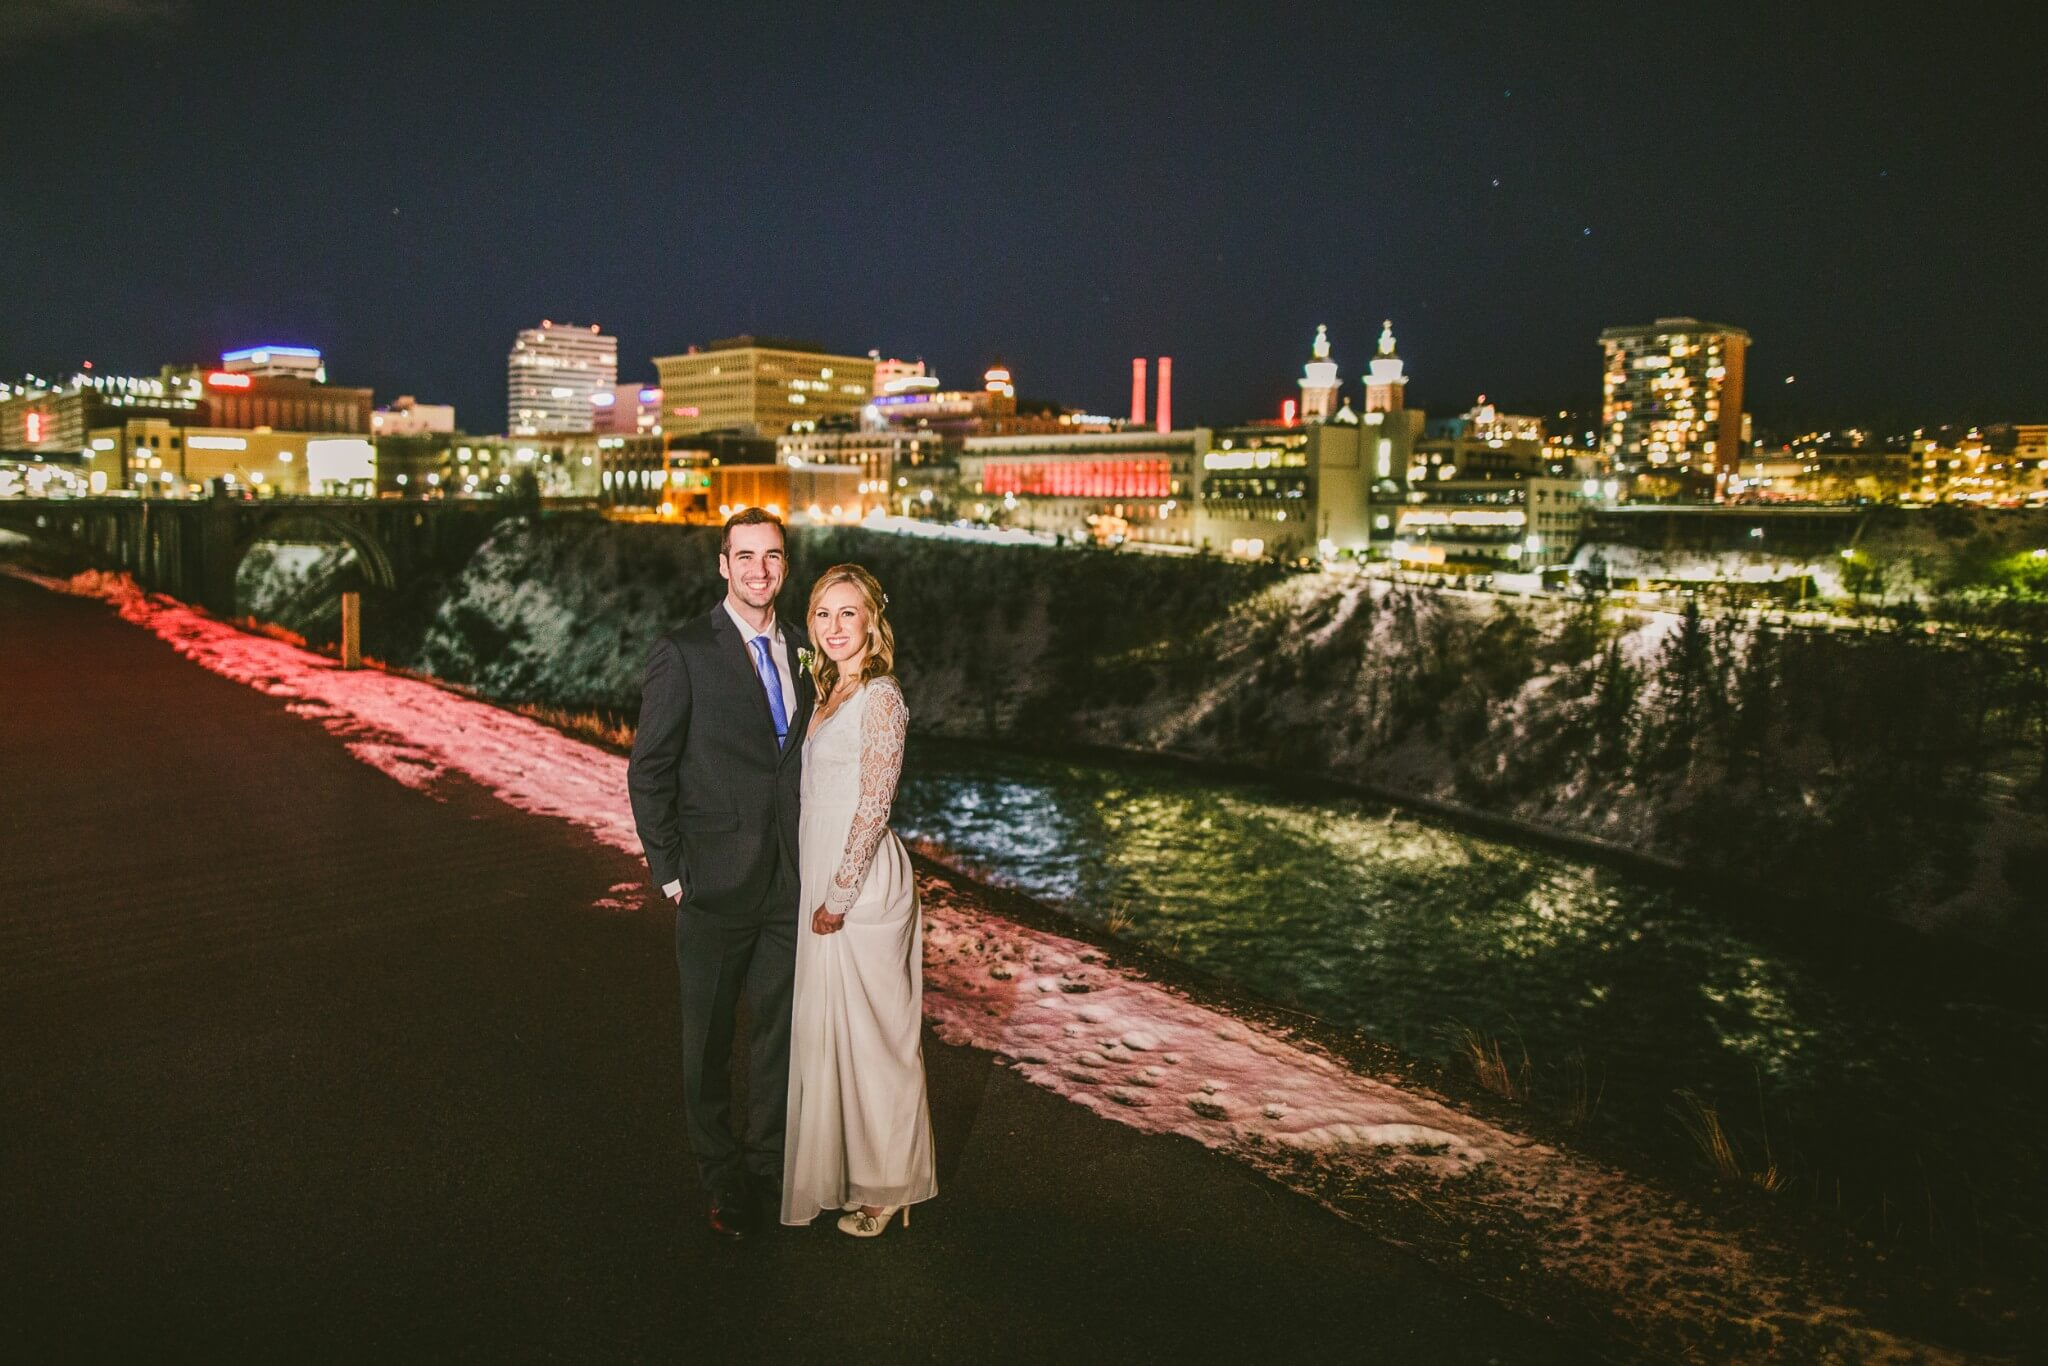 weisgerber photography spokane wedding  (172 of 314).jpg